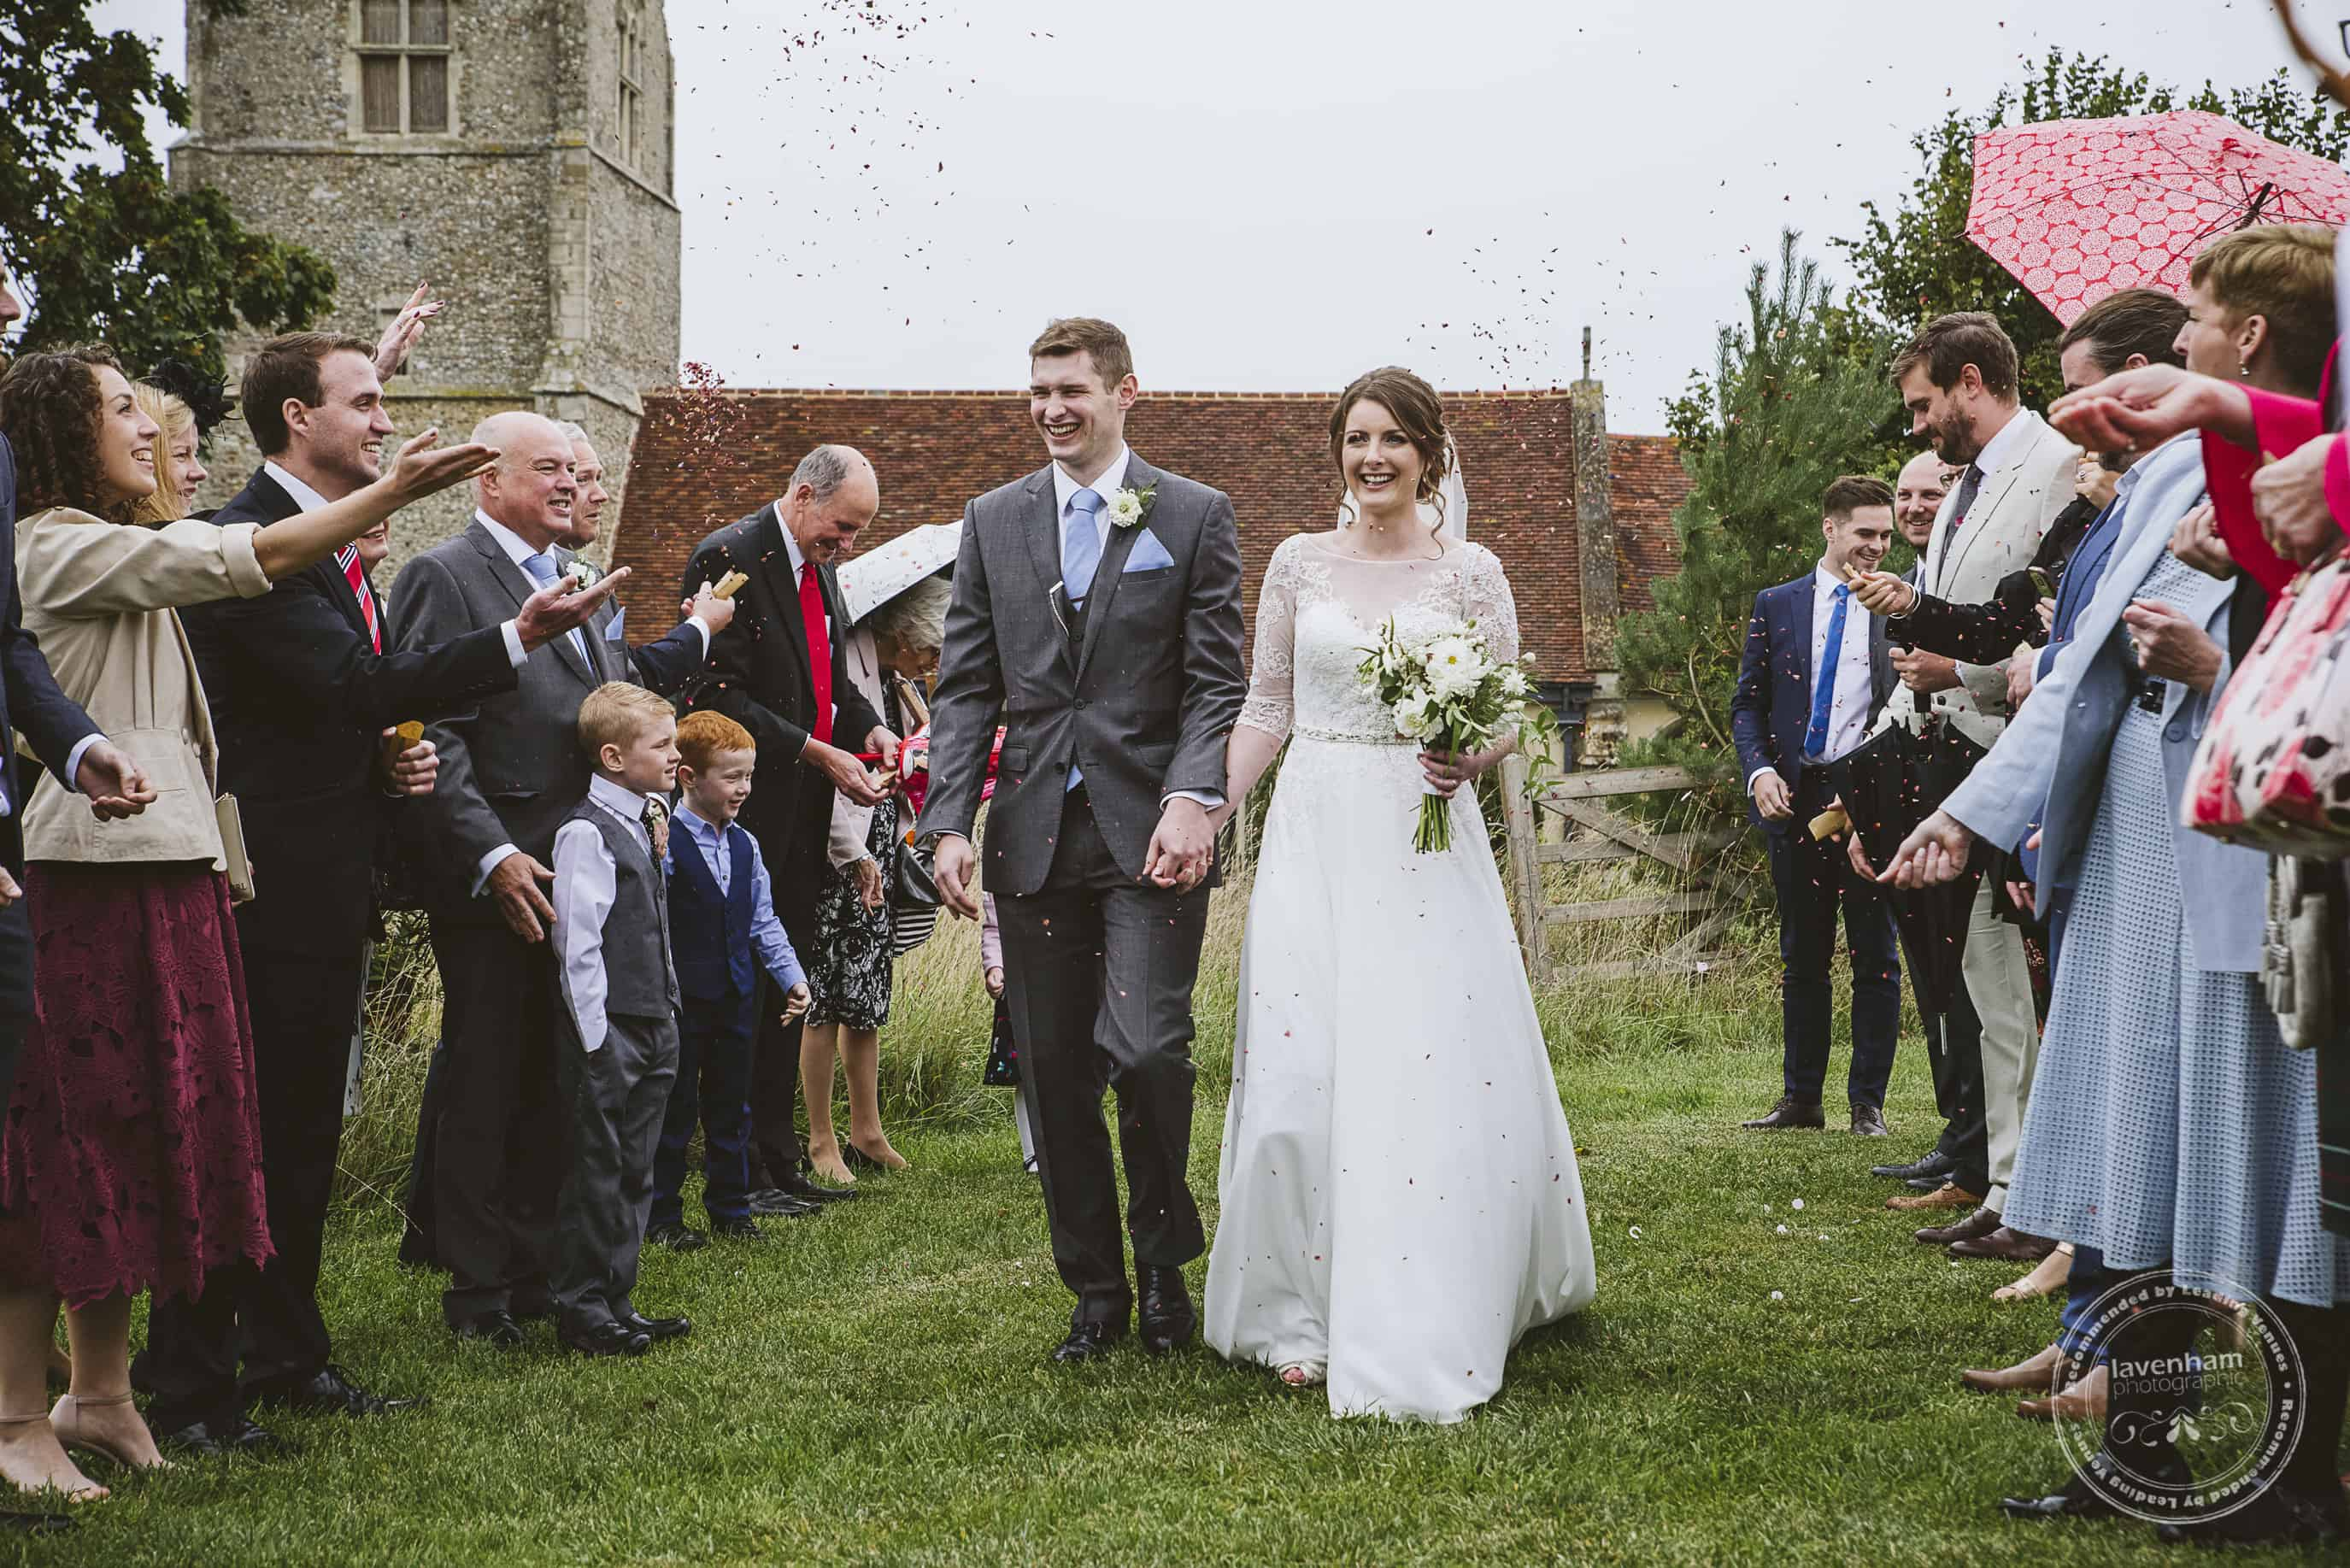 220918 Alpheton Barn Wedding Photography by Lavenham Photographic 074